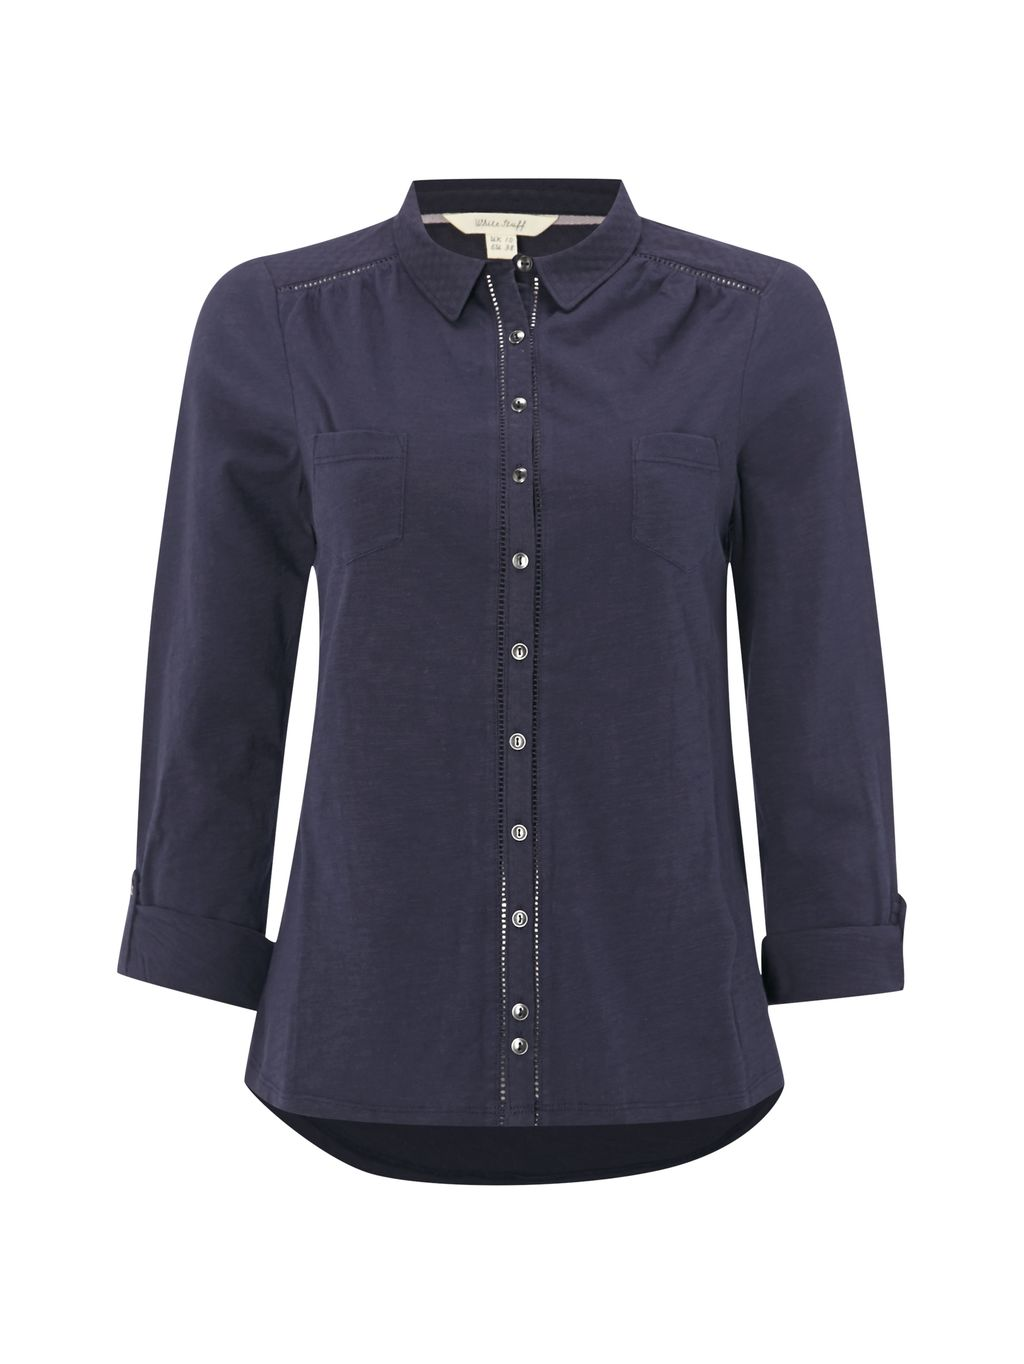 Pearl Ls Jersey Shirt, Navy - neckline: shirt collar/peter pan/zip with opening; pattern: plain; style: shirt; predominant colour: navy; occasions: casual; length: standard; fibres: cotton - 100%; fit: body skimming; sleeve length: 3/4 length; sleeve style: standard; pattern type: fabric; texture group: jersey - stretchy/drapey; wardrobe: basic; season: a/w 2016